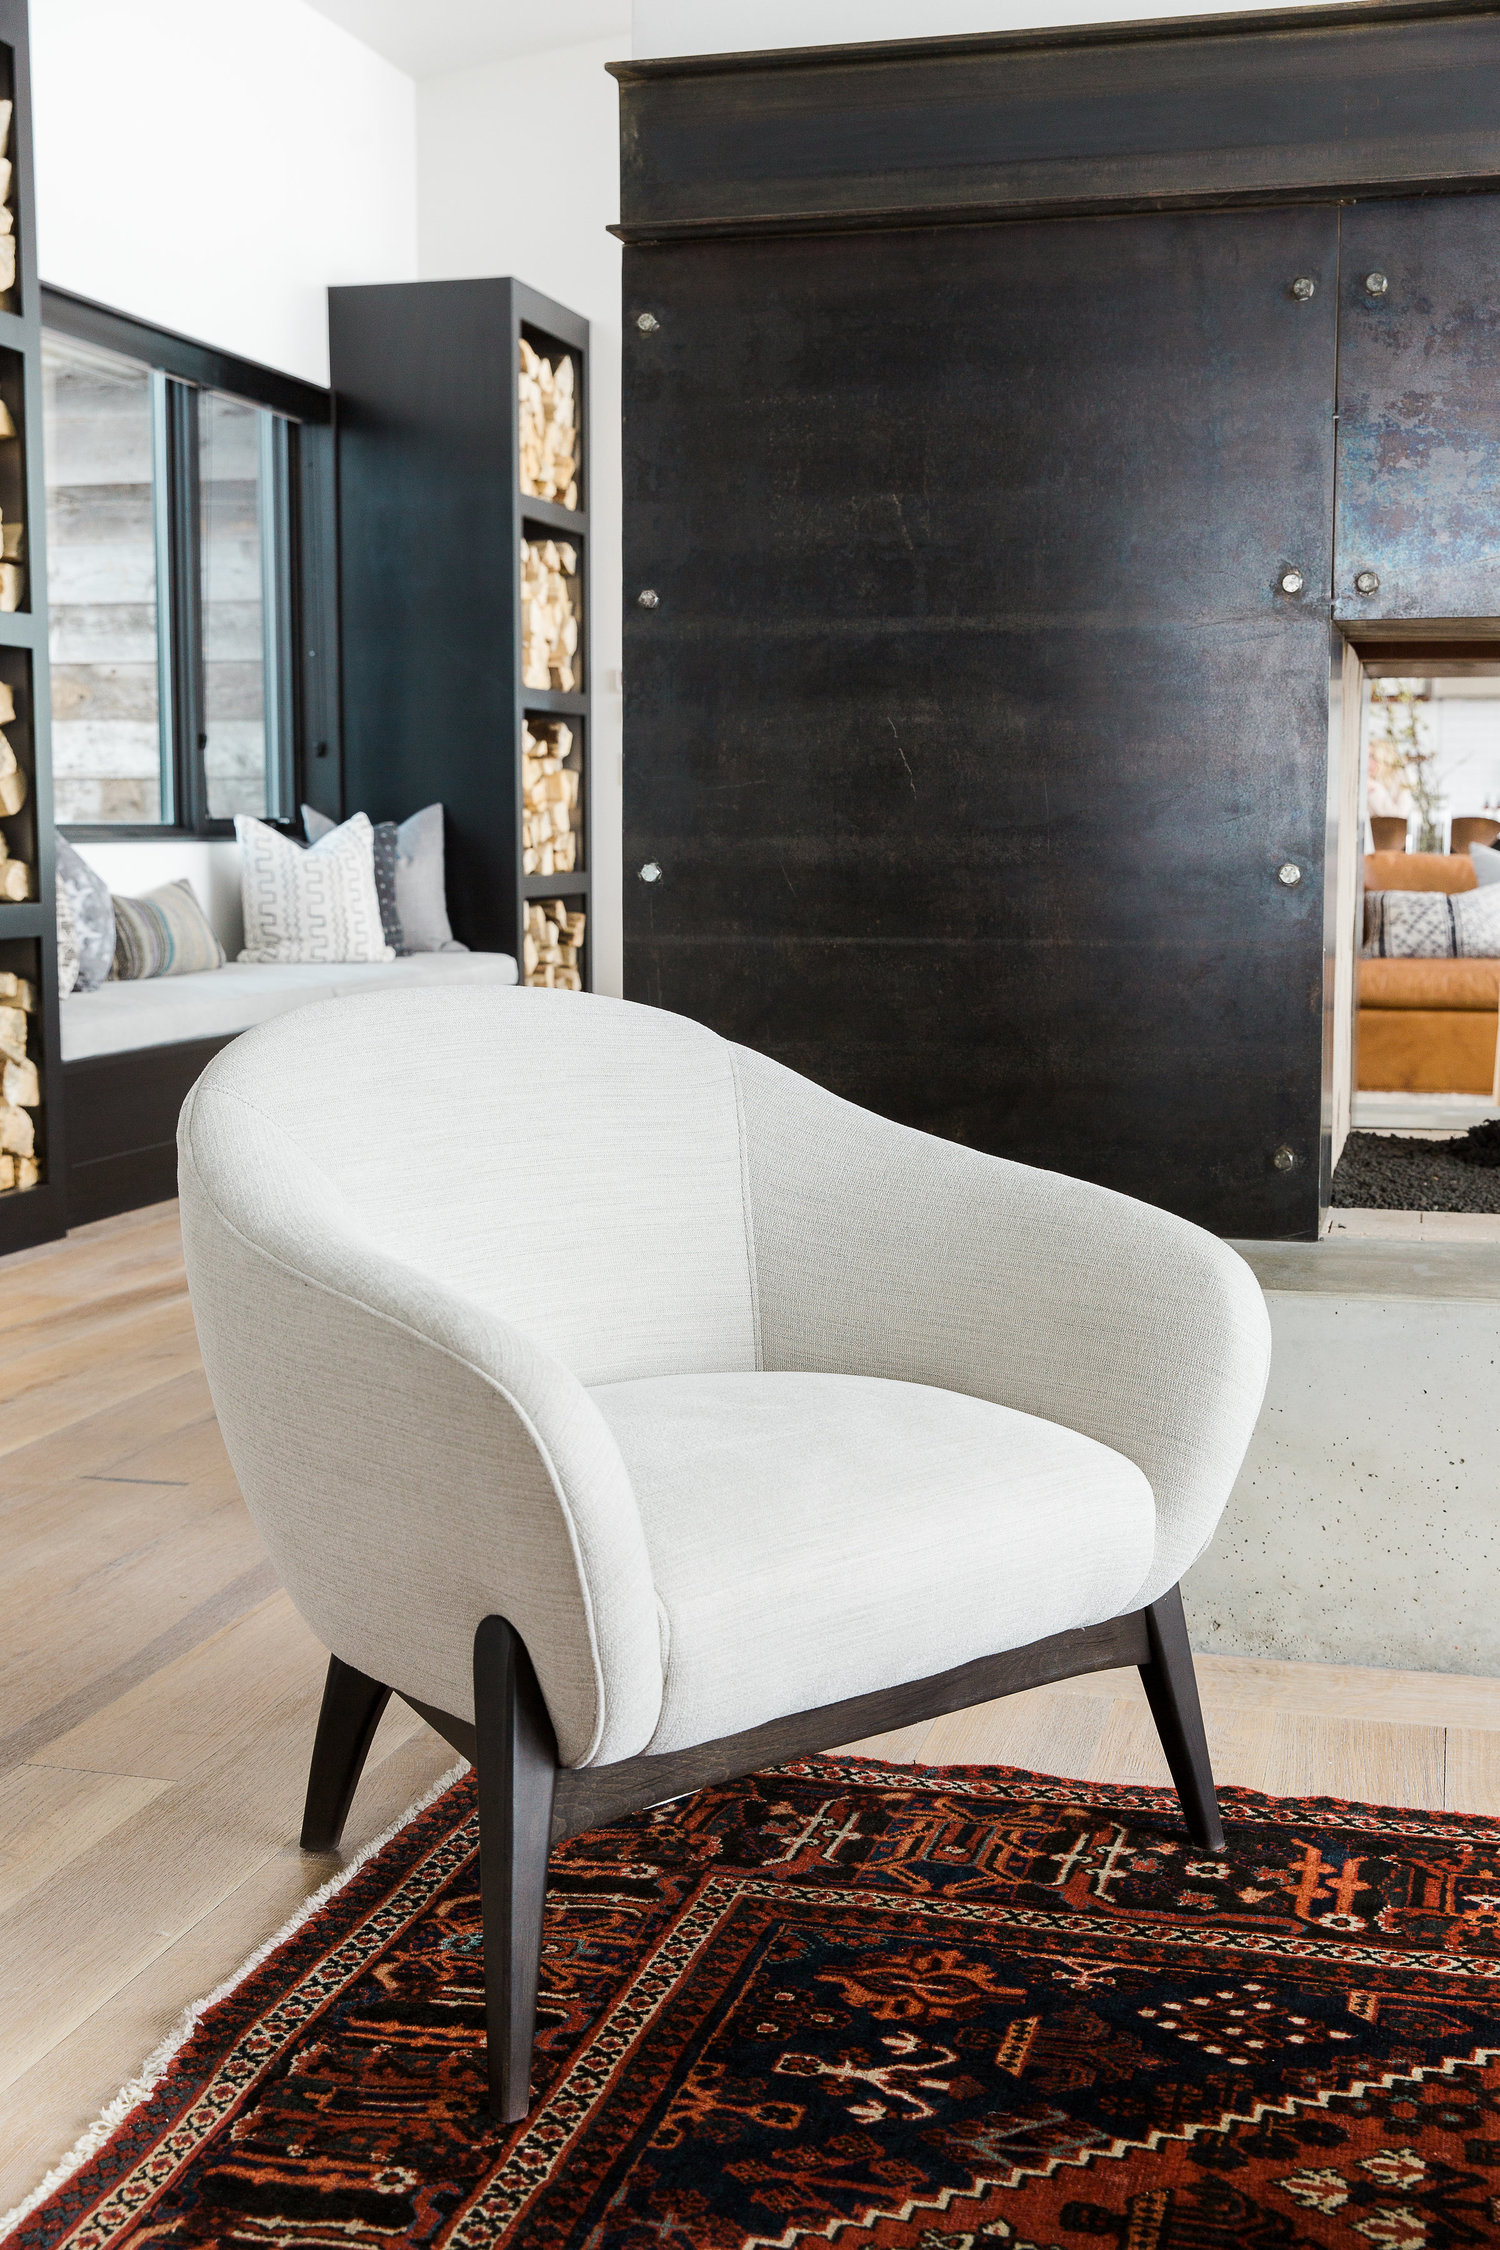 White seat on top of decorative rug